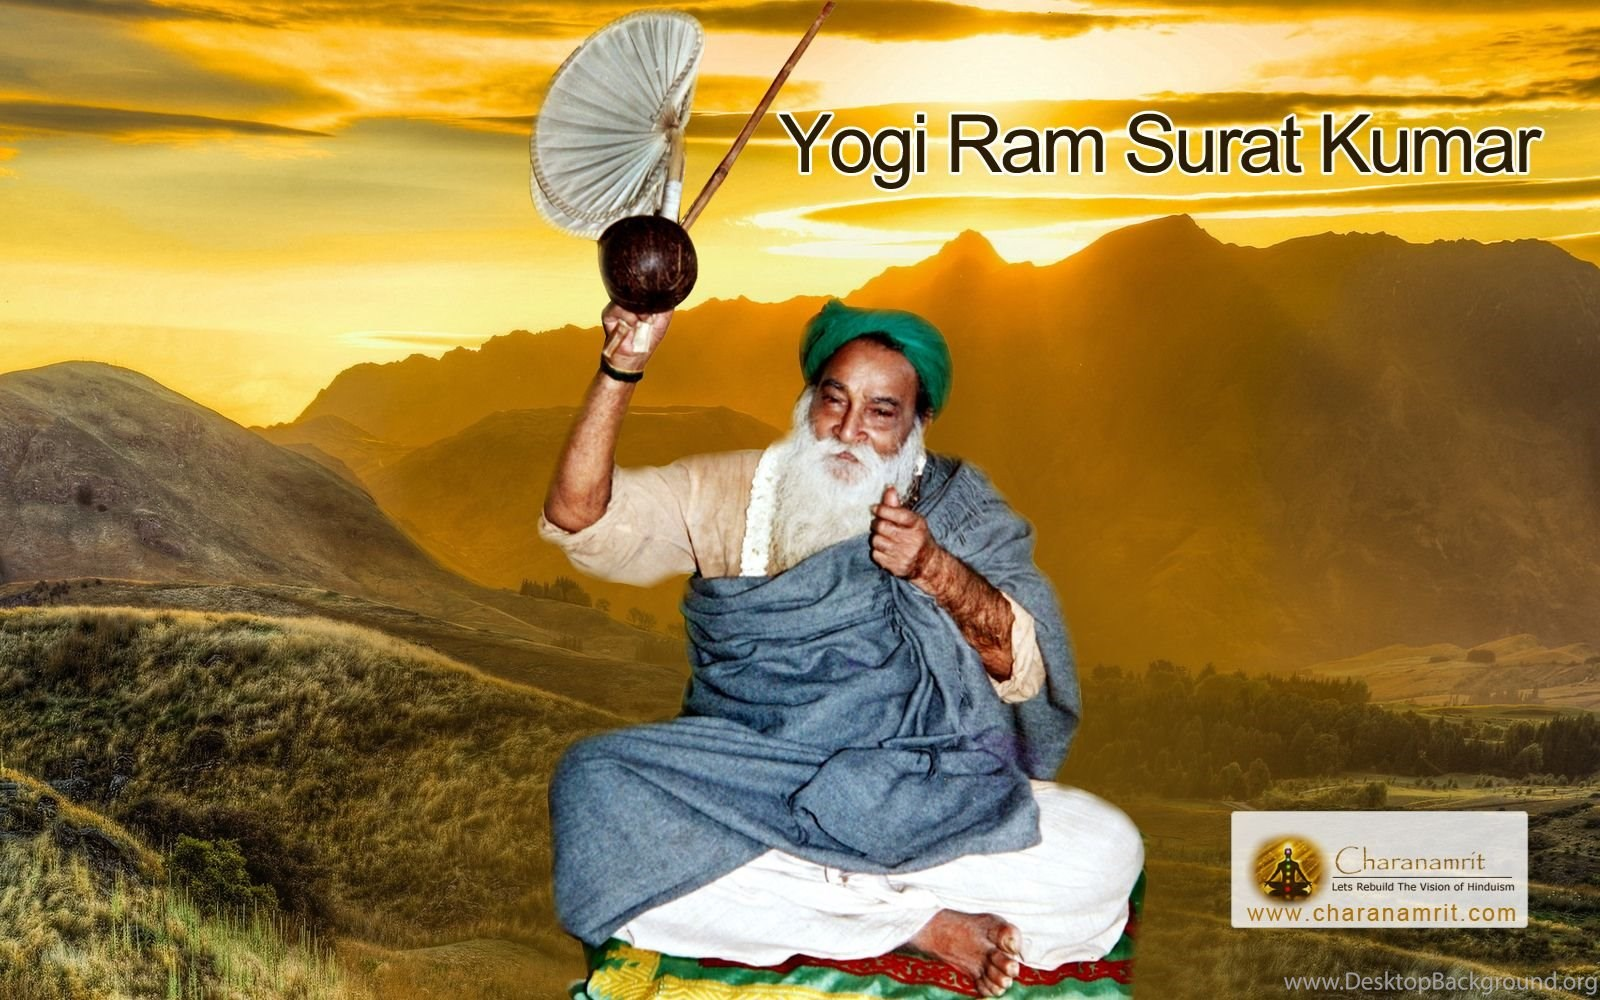 Hd wallpaper yogi adityanath - Yogi Ramsuratkumar Jaya Guru Wonderful Hd Wallpapers For Free